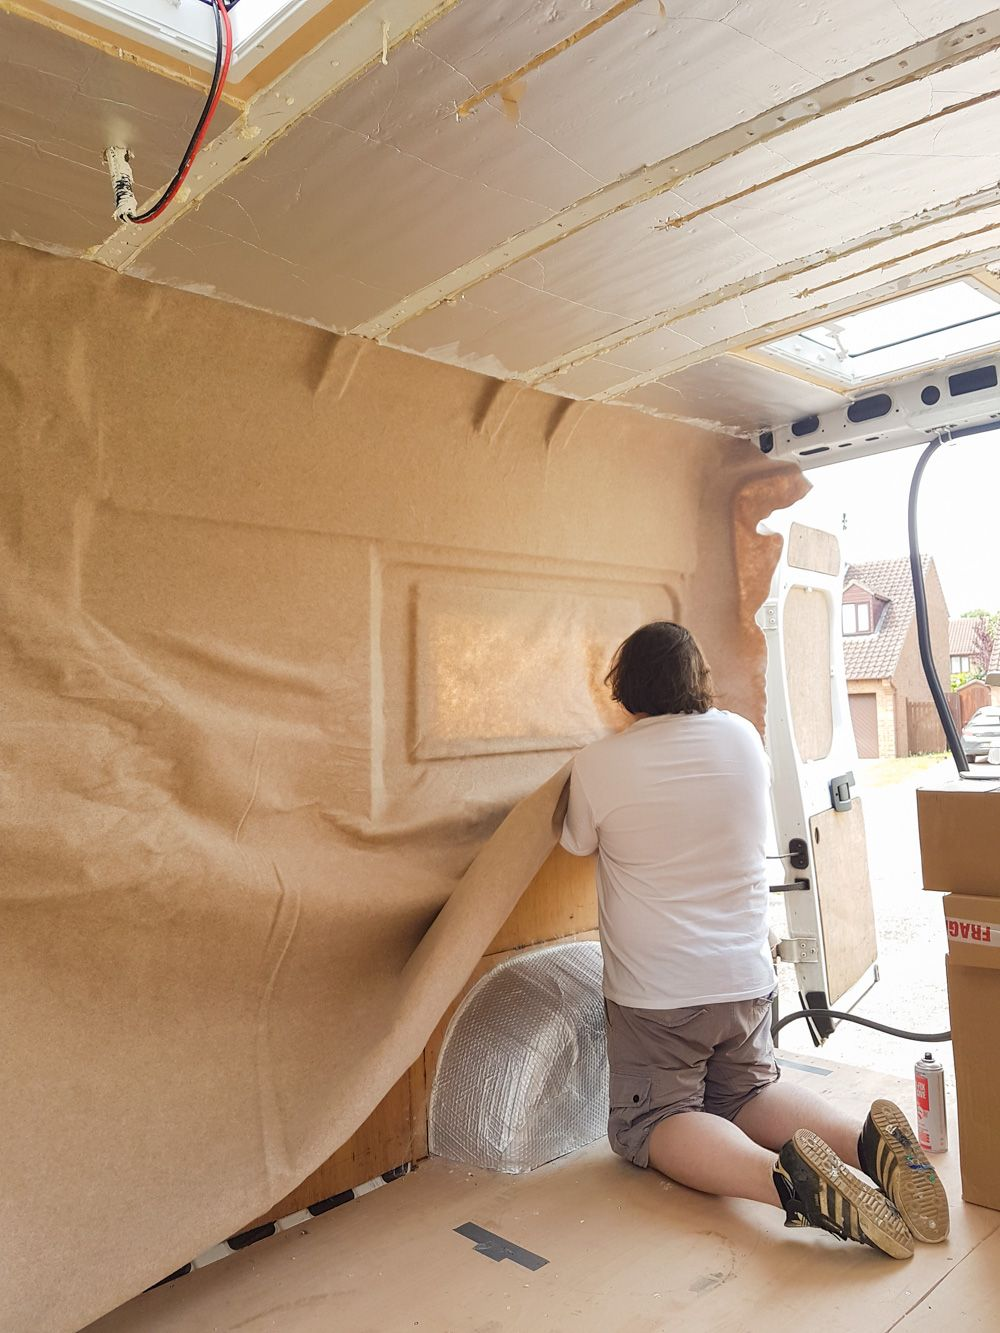 Wohnmobil Wände Verkleiden We Decided That Rather Than Paneling The Van Walls With Wood We